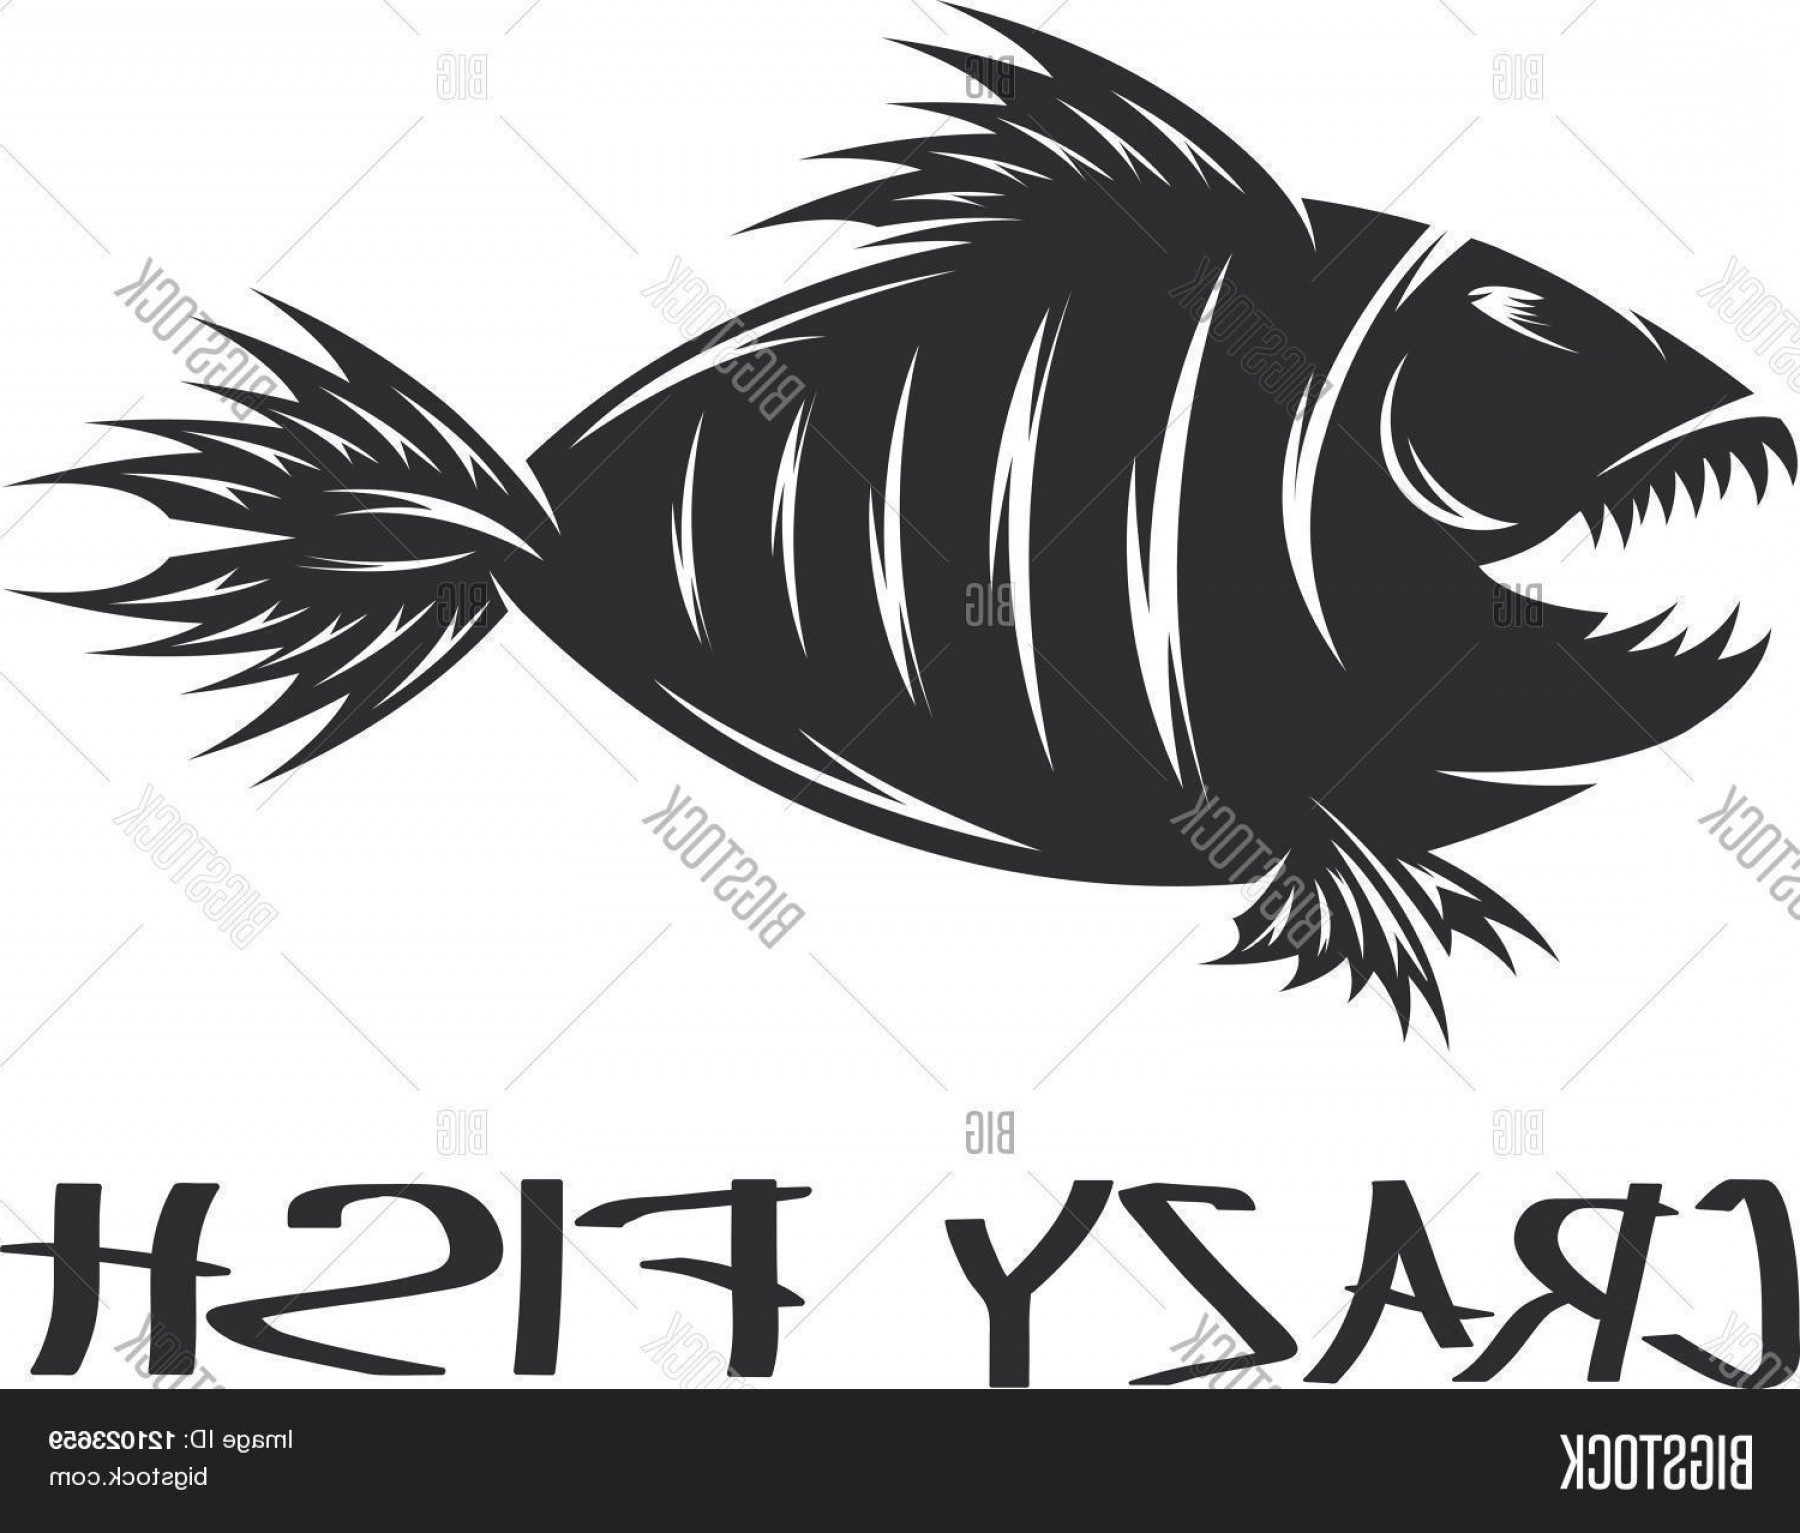 Fish Vector Graphic: Stock Vector Crazy Fish Mascot Vector Design Template Concept Of Graphic Clipart Work